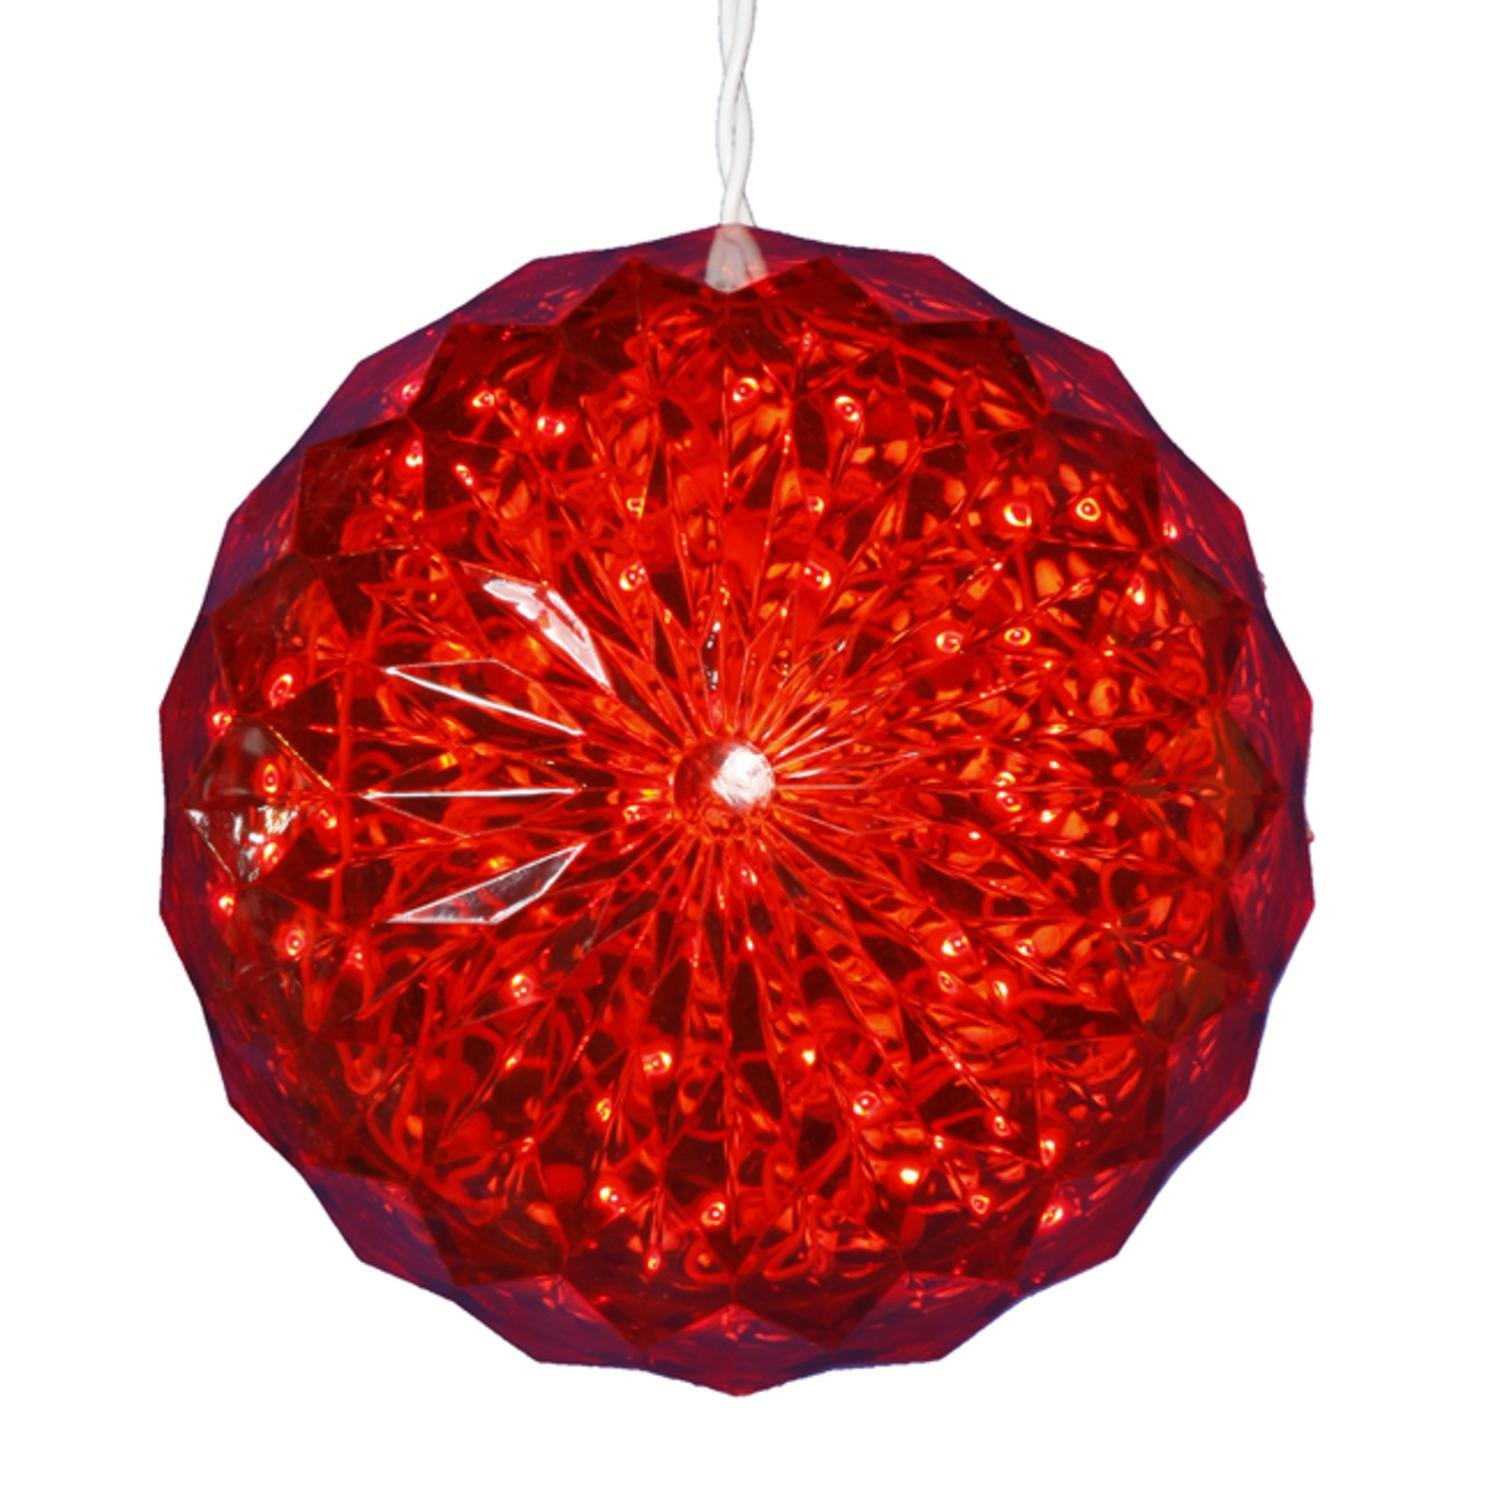 amazoncom penn 6 red led lighted hanging christmas crystal sphere ball outdoor decoration home kitchen - Christmas Sphere Lights